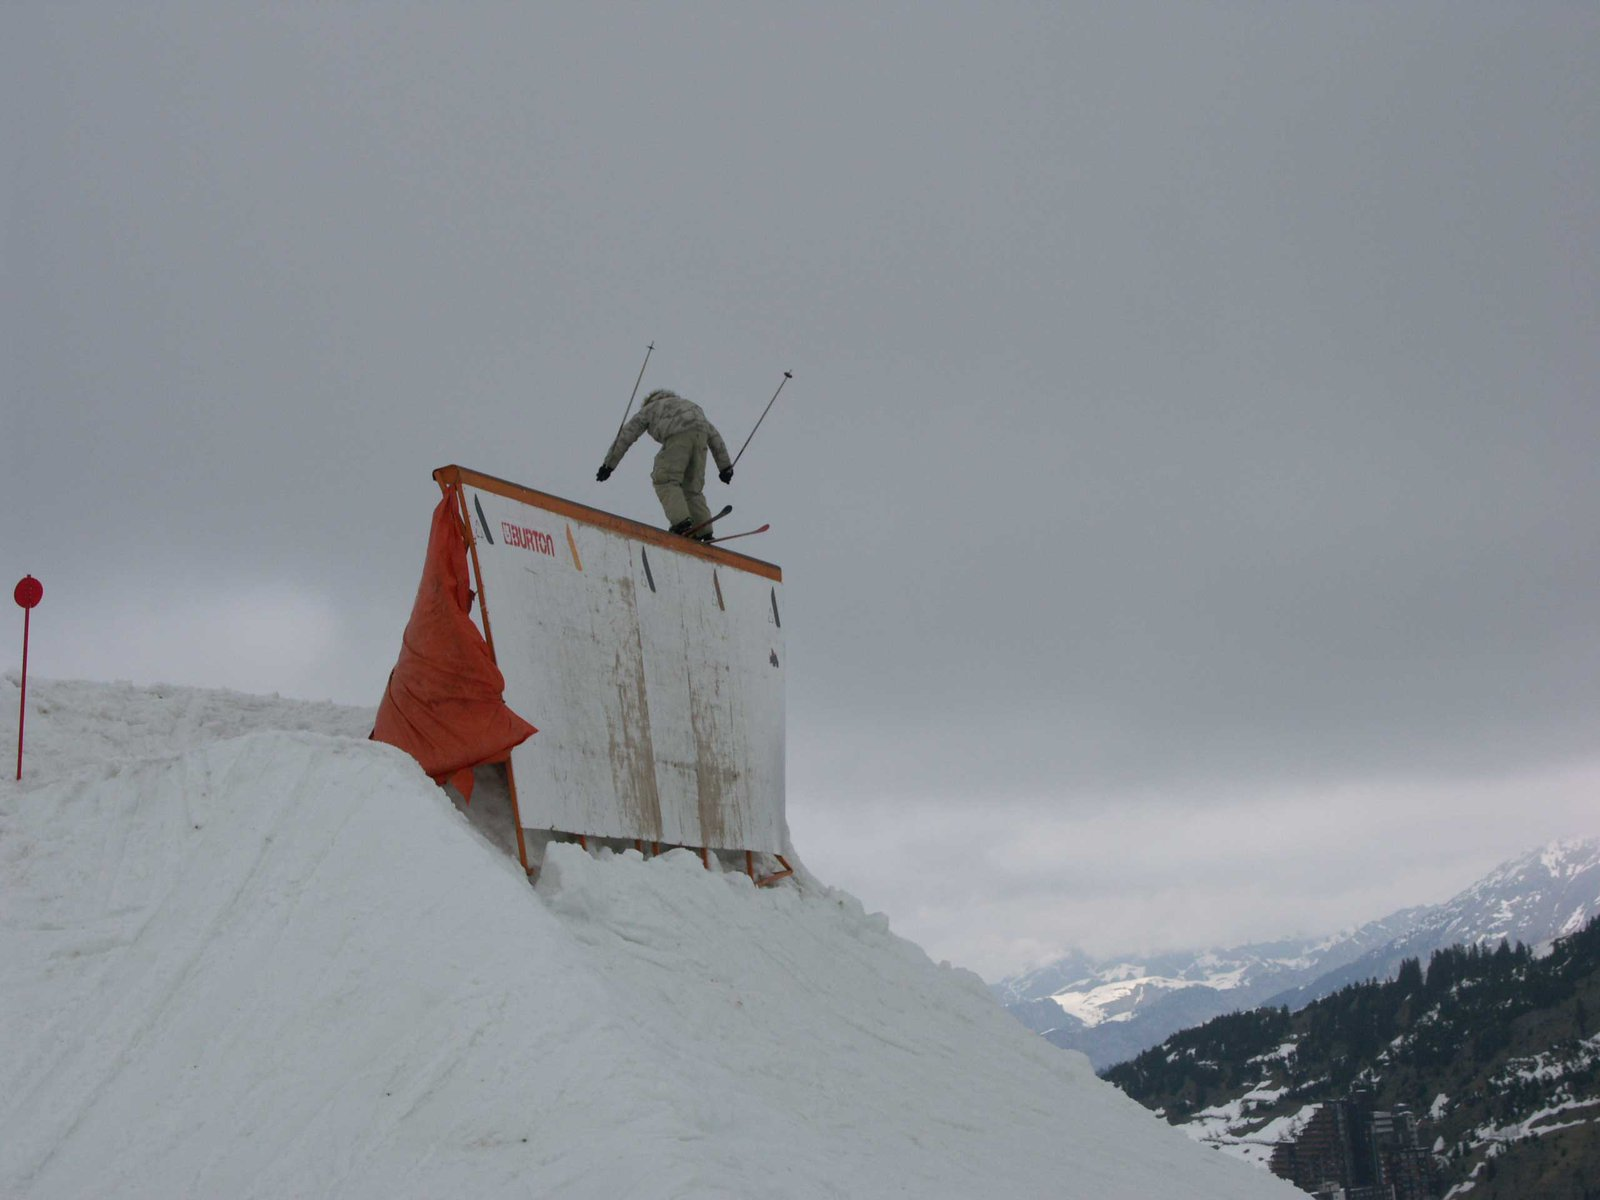 huge rail (normally a wall ride) (Telemark)